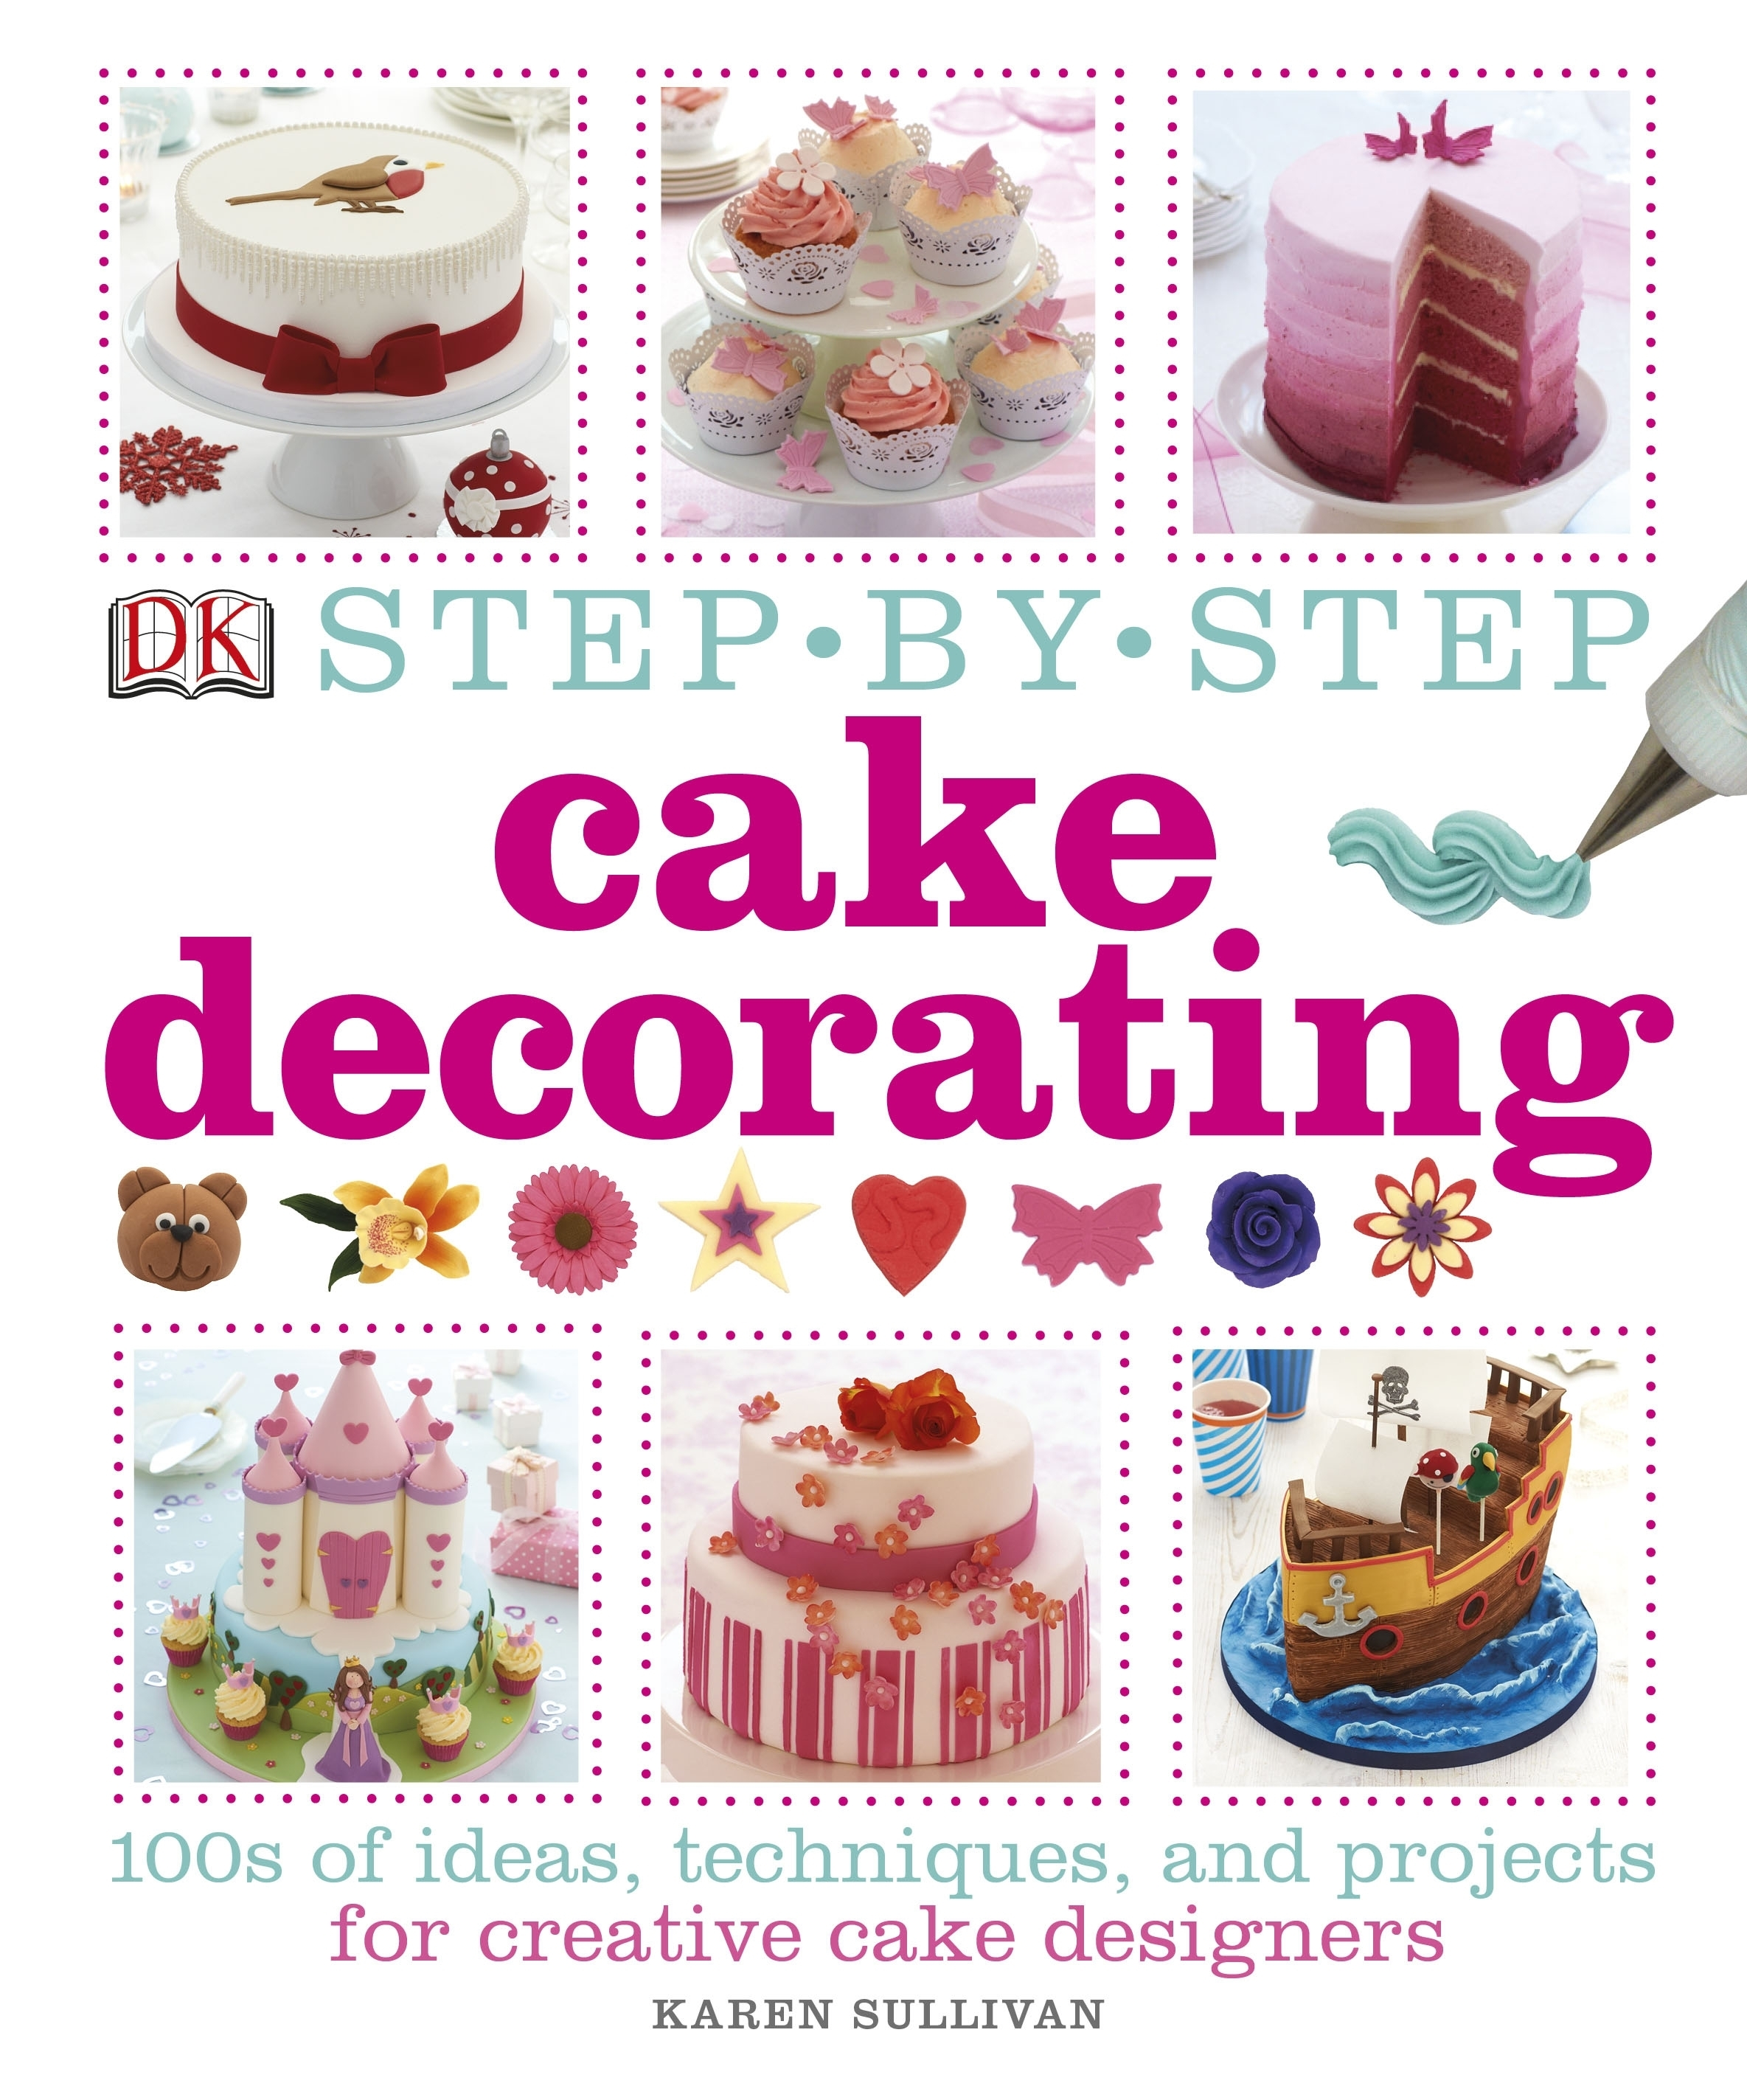 Step-by-Step Cake Decorating by DK - Penguin Books Australia